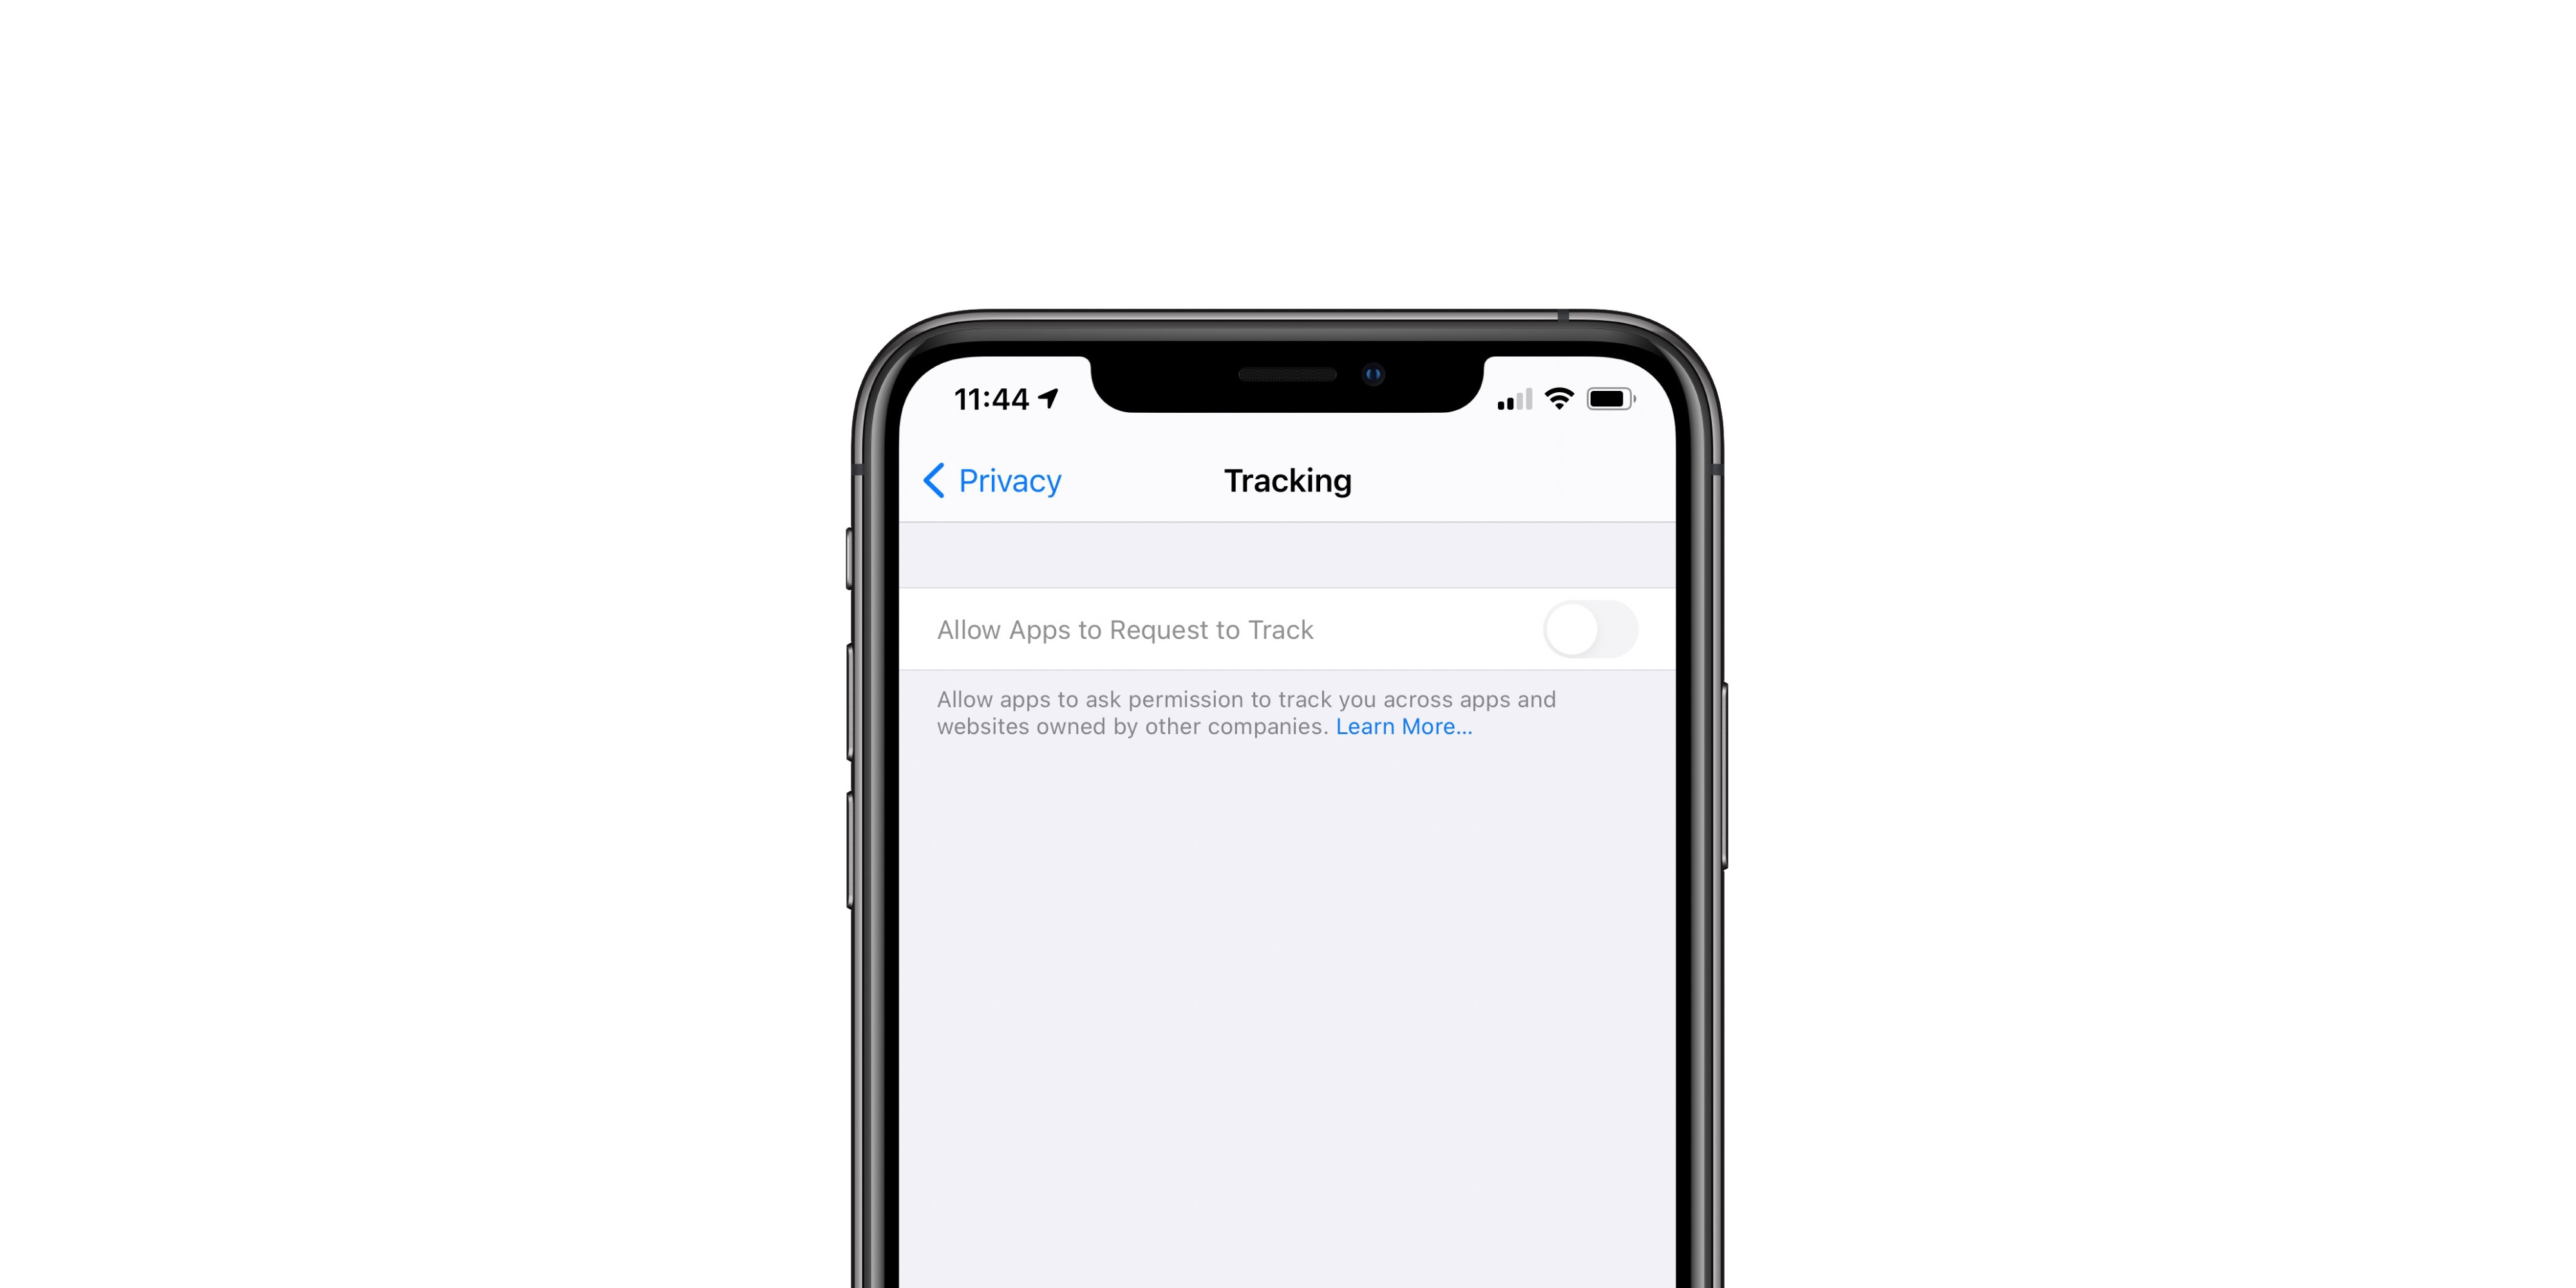 Apple doubles down on iOS 14 tracking privacy as Facebook panics